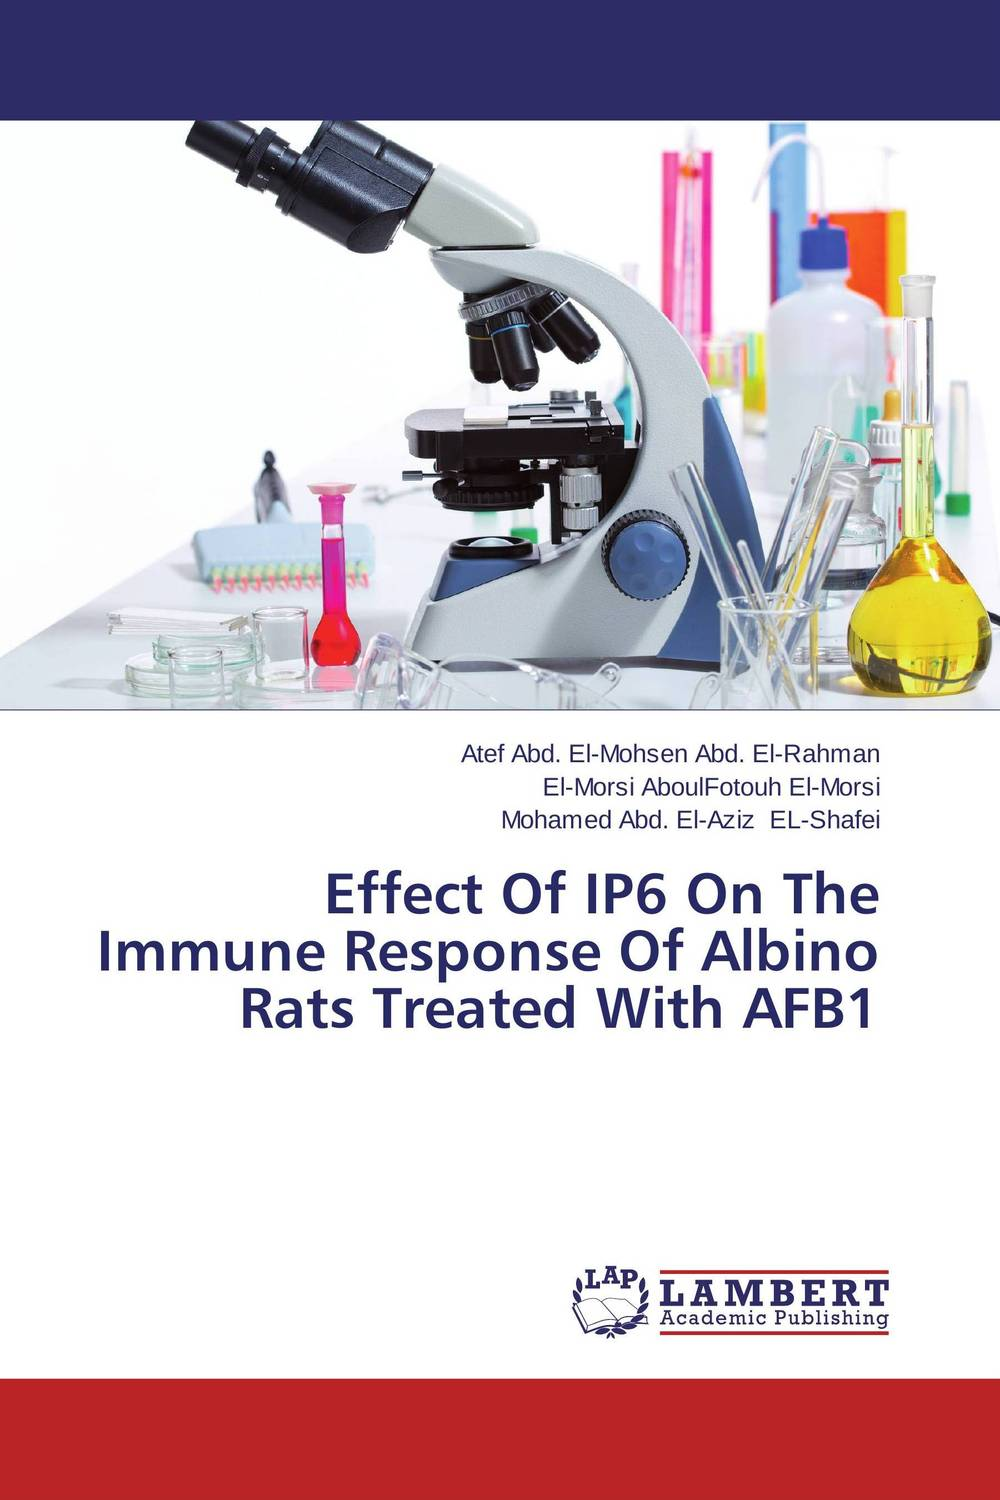 Effect Of IP6 On The Immune Response Of Albino Rats Treated With AFB1 53 16